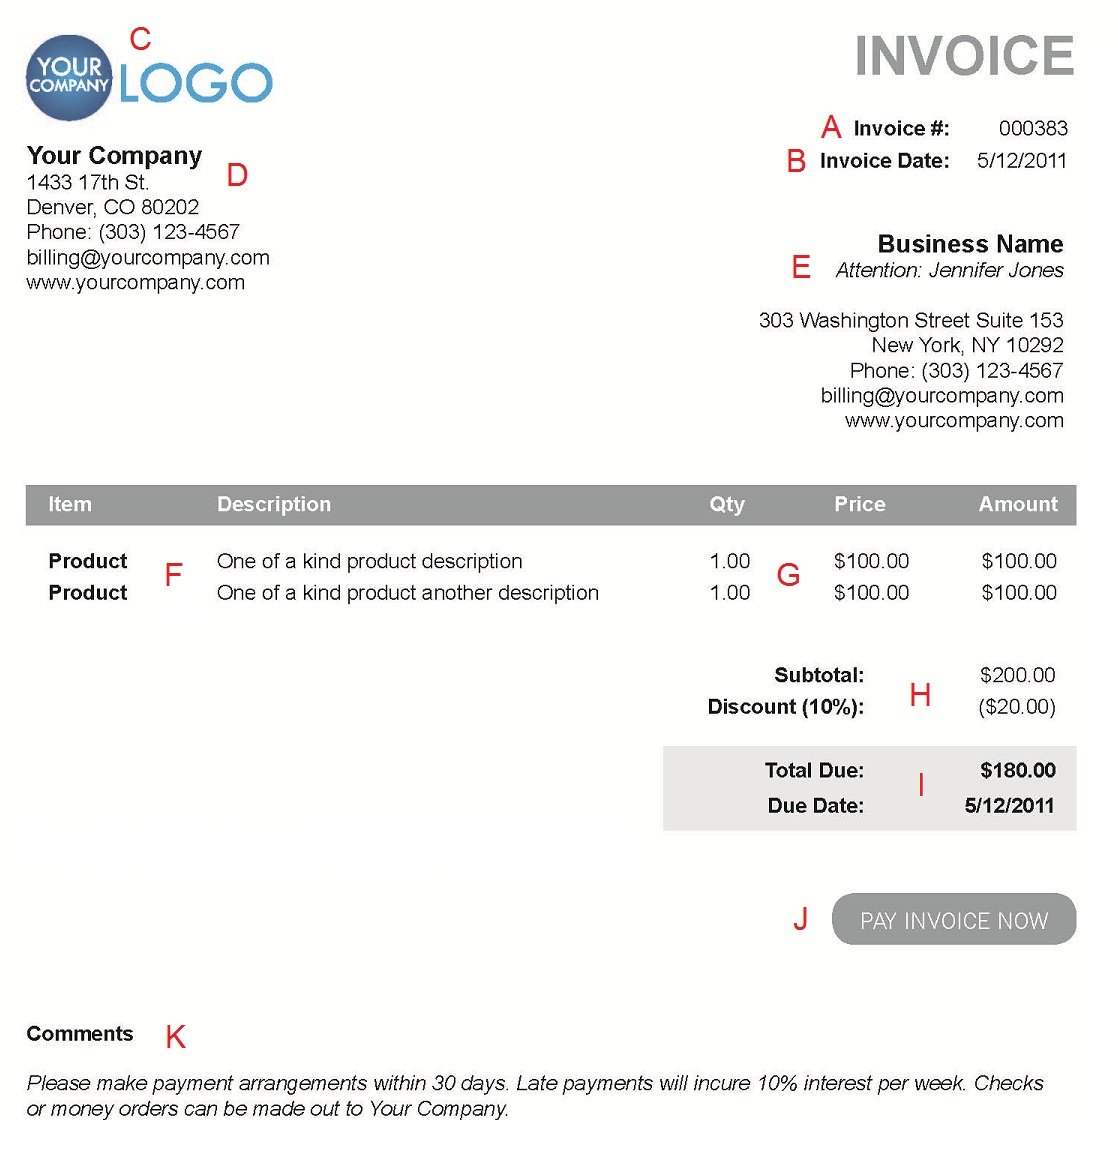 Adoringacklesus  Marvellous The  Different Sections Of An Electronic Payment Invoice With Interesting A  With Alluring Hvac Service Invoices Also Quote Vs Invoice In Addition Harvest Invoices And Invoice Printing Company As Well As Invoice Billing Additionally Roofing Invoice Template From Paysimplecom With Adoringacklesus  Interesting The  Different Sections Of An Electronic Payment Invoice With Alluring A  And Marvellous Hvac Service Invoices Also Quote Vs Invoice In Addition Harvest Invoices From Paysimplecom